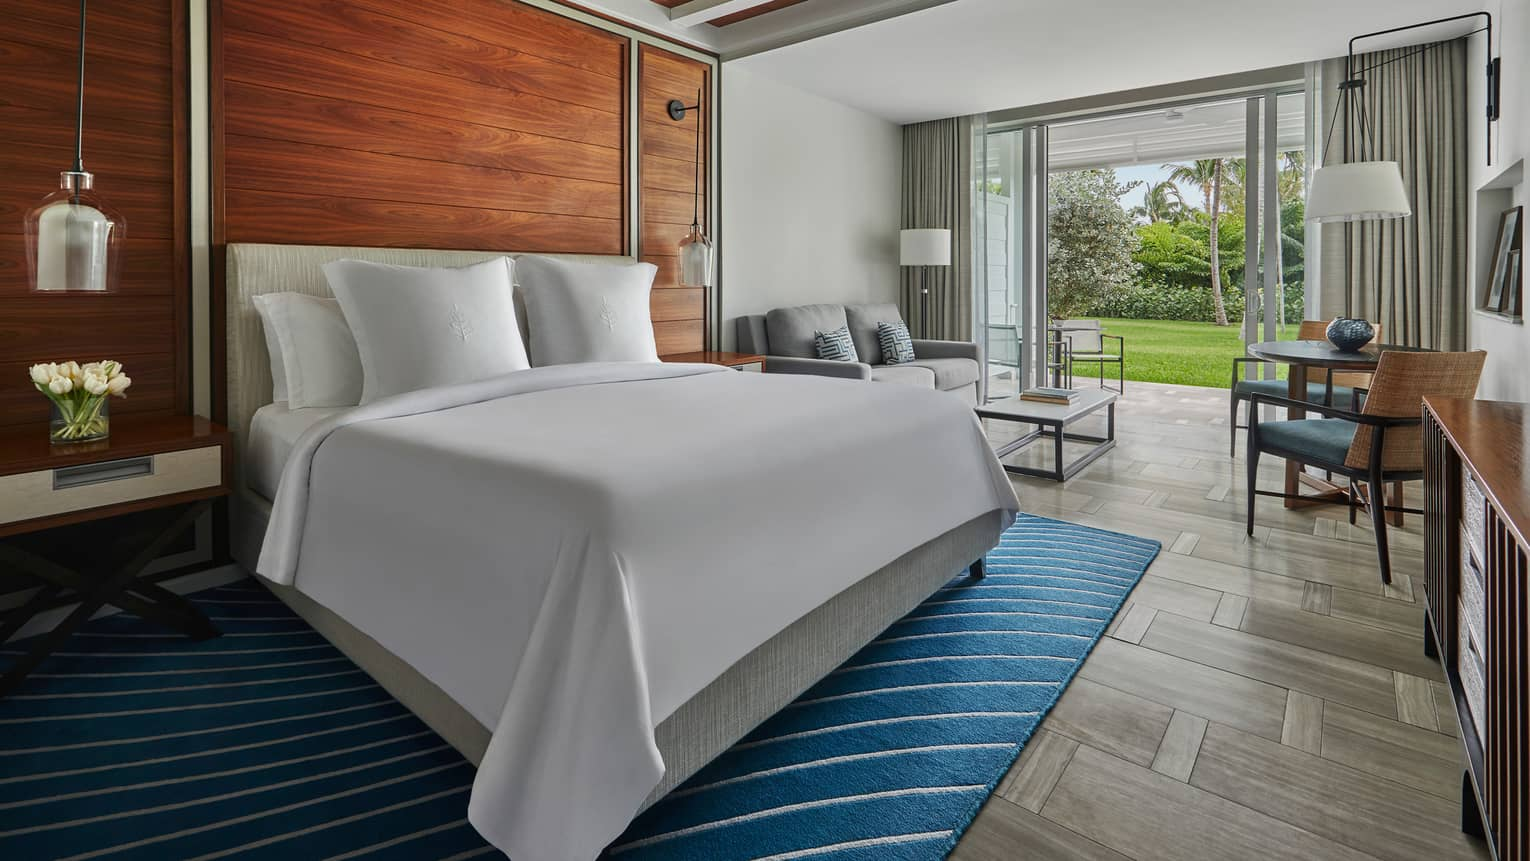 Garden-View Room bed against wood accent wall, seating area by open glass doors to patio